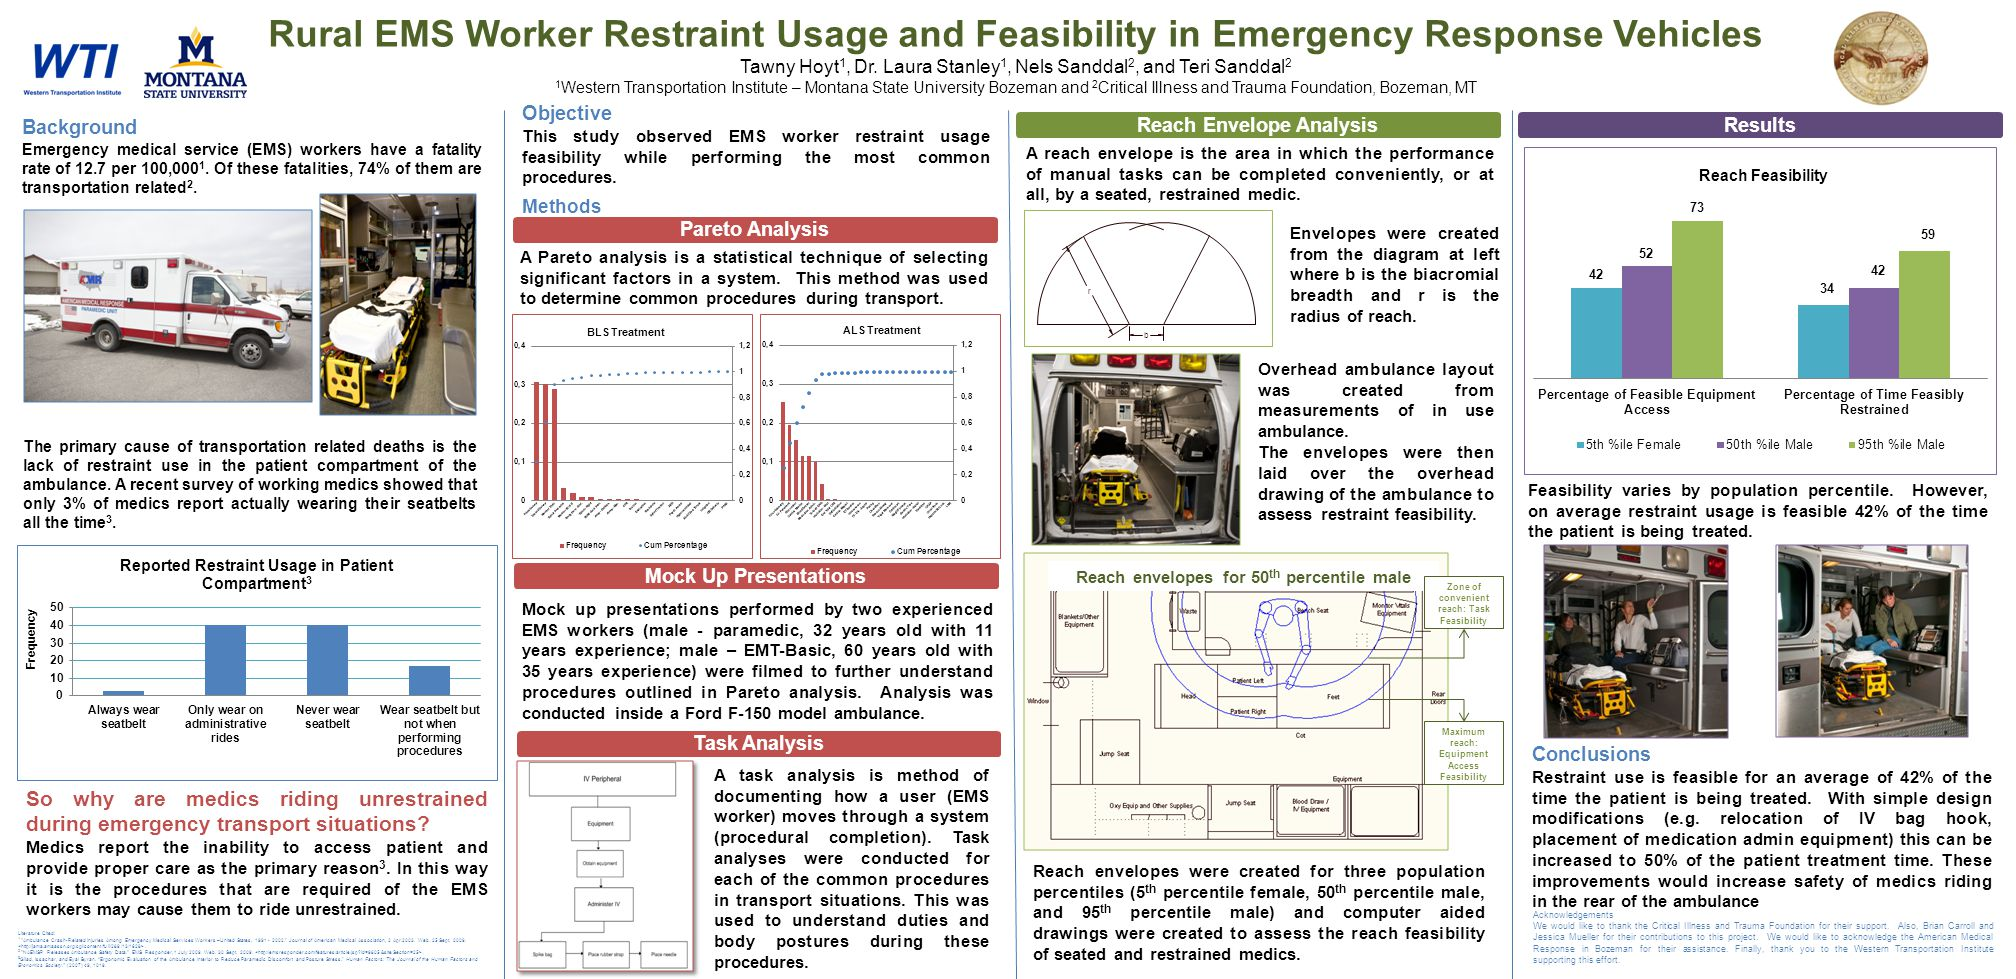 Objective This study observed EMS worker restraint usage feasibility while performing the most common procedures.